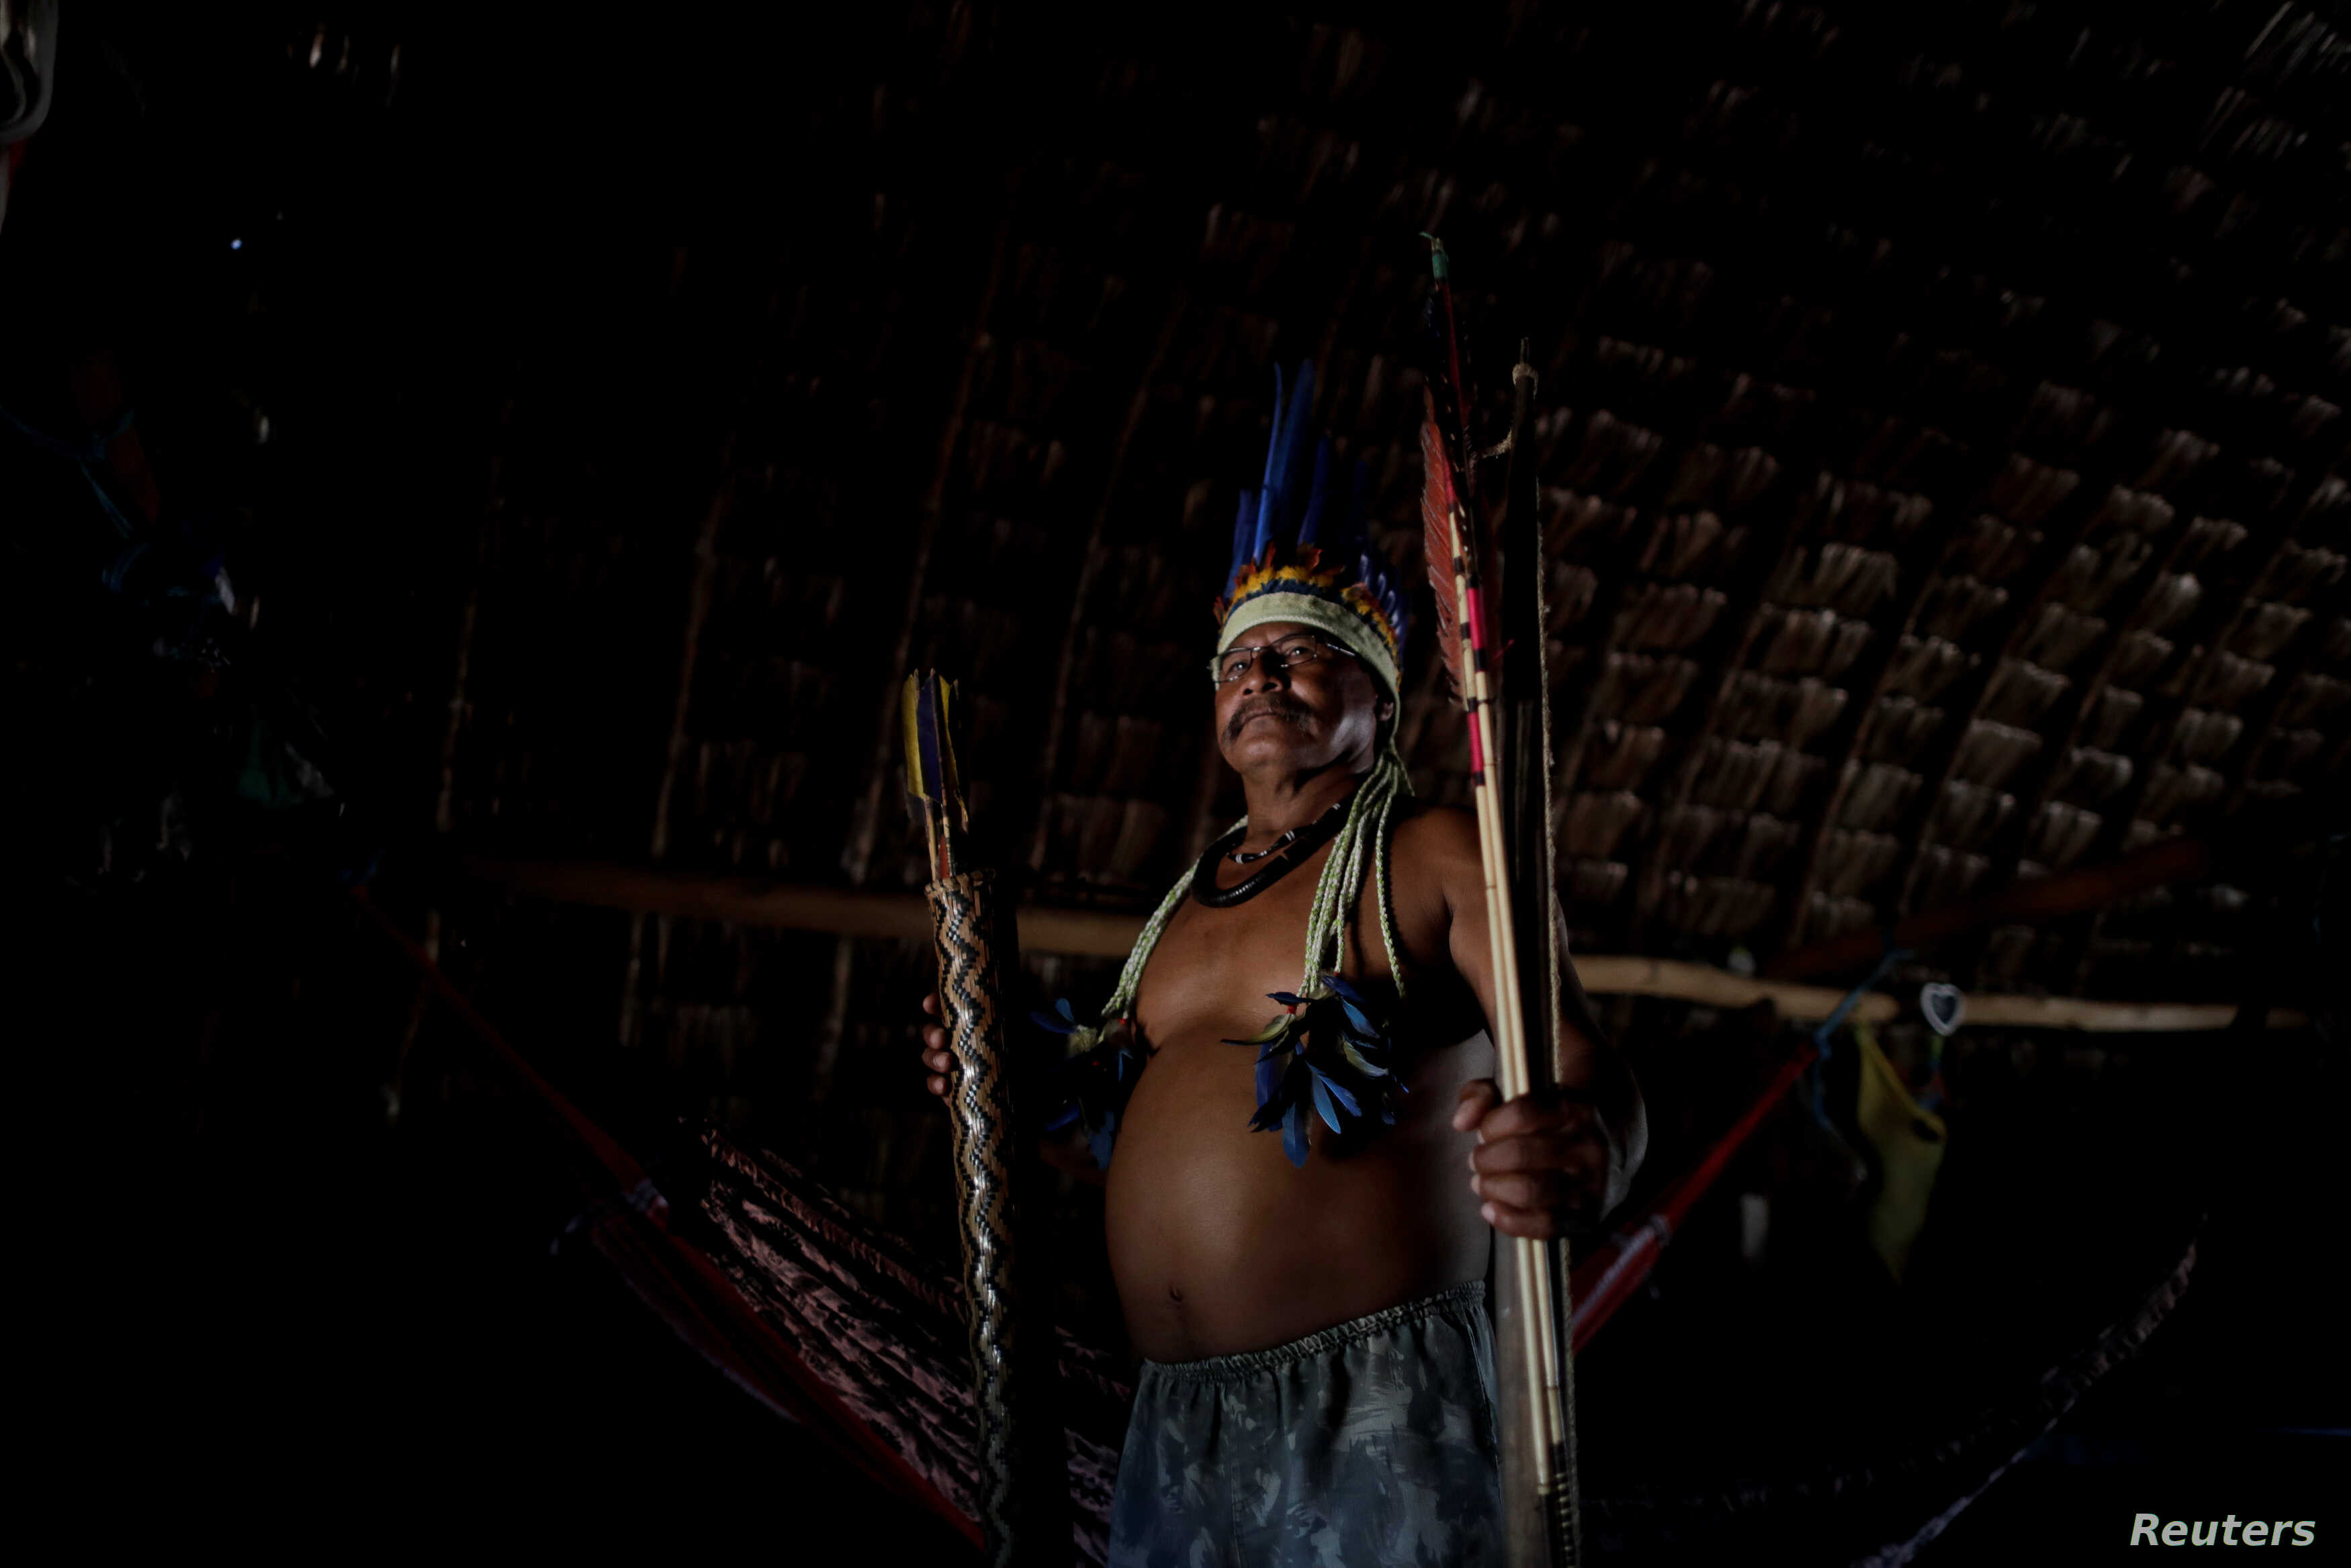 Brazilian Tribes Fined for GMO Soy Crops on Reservations